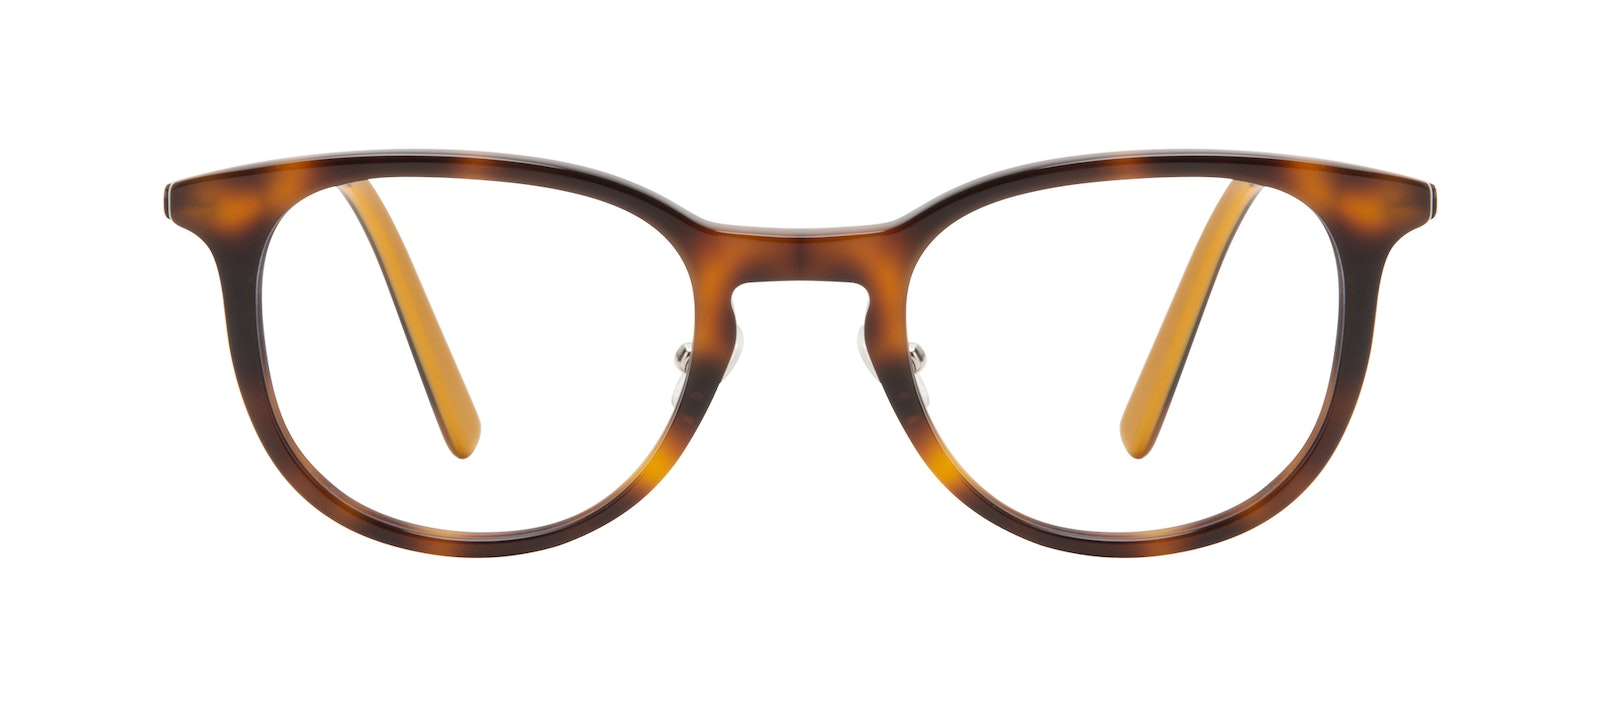 Affordable Fashion Glasses Round Eyeglasses Men Coast Tortoise Front